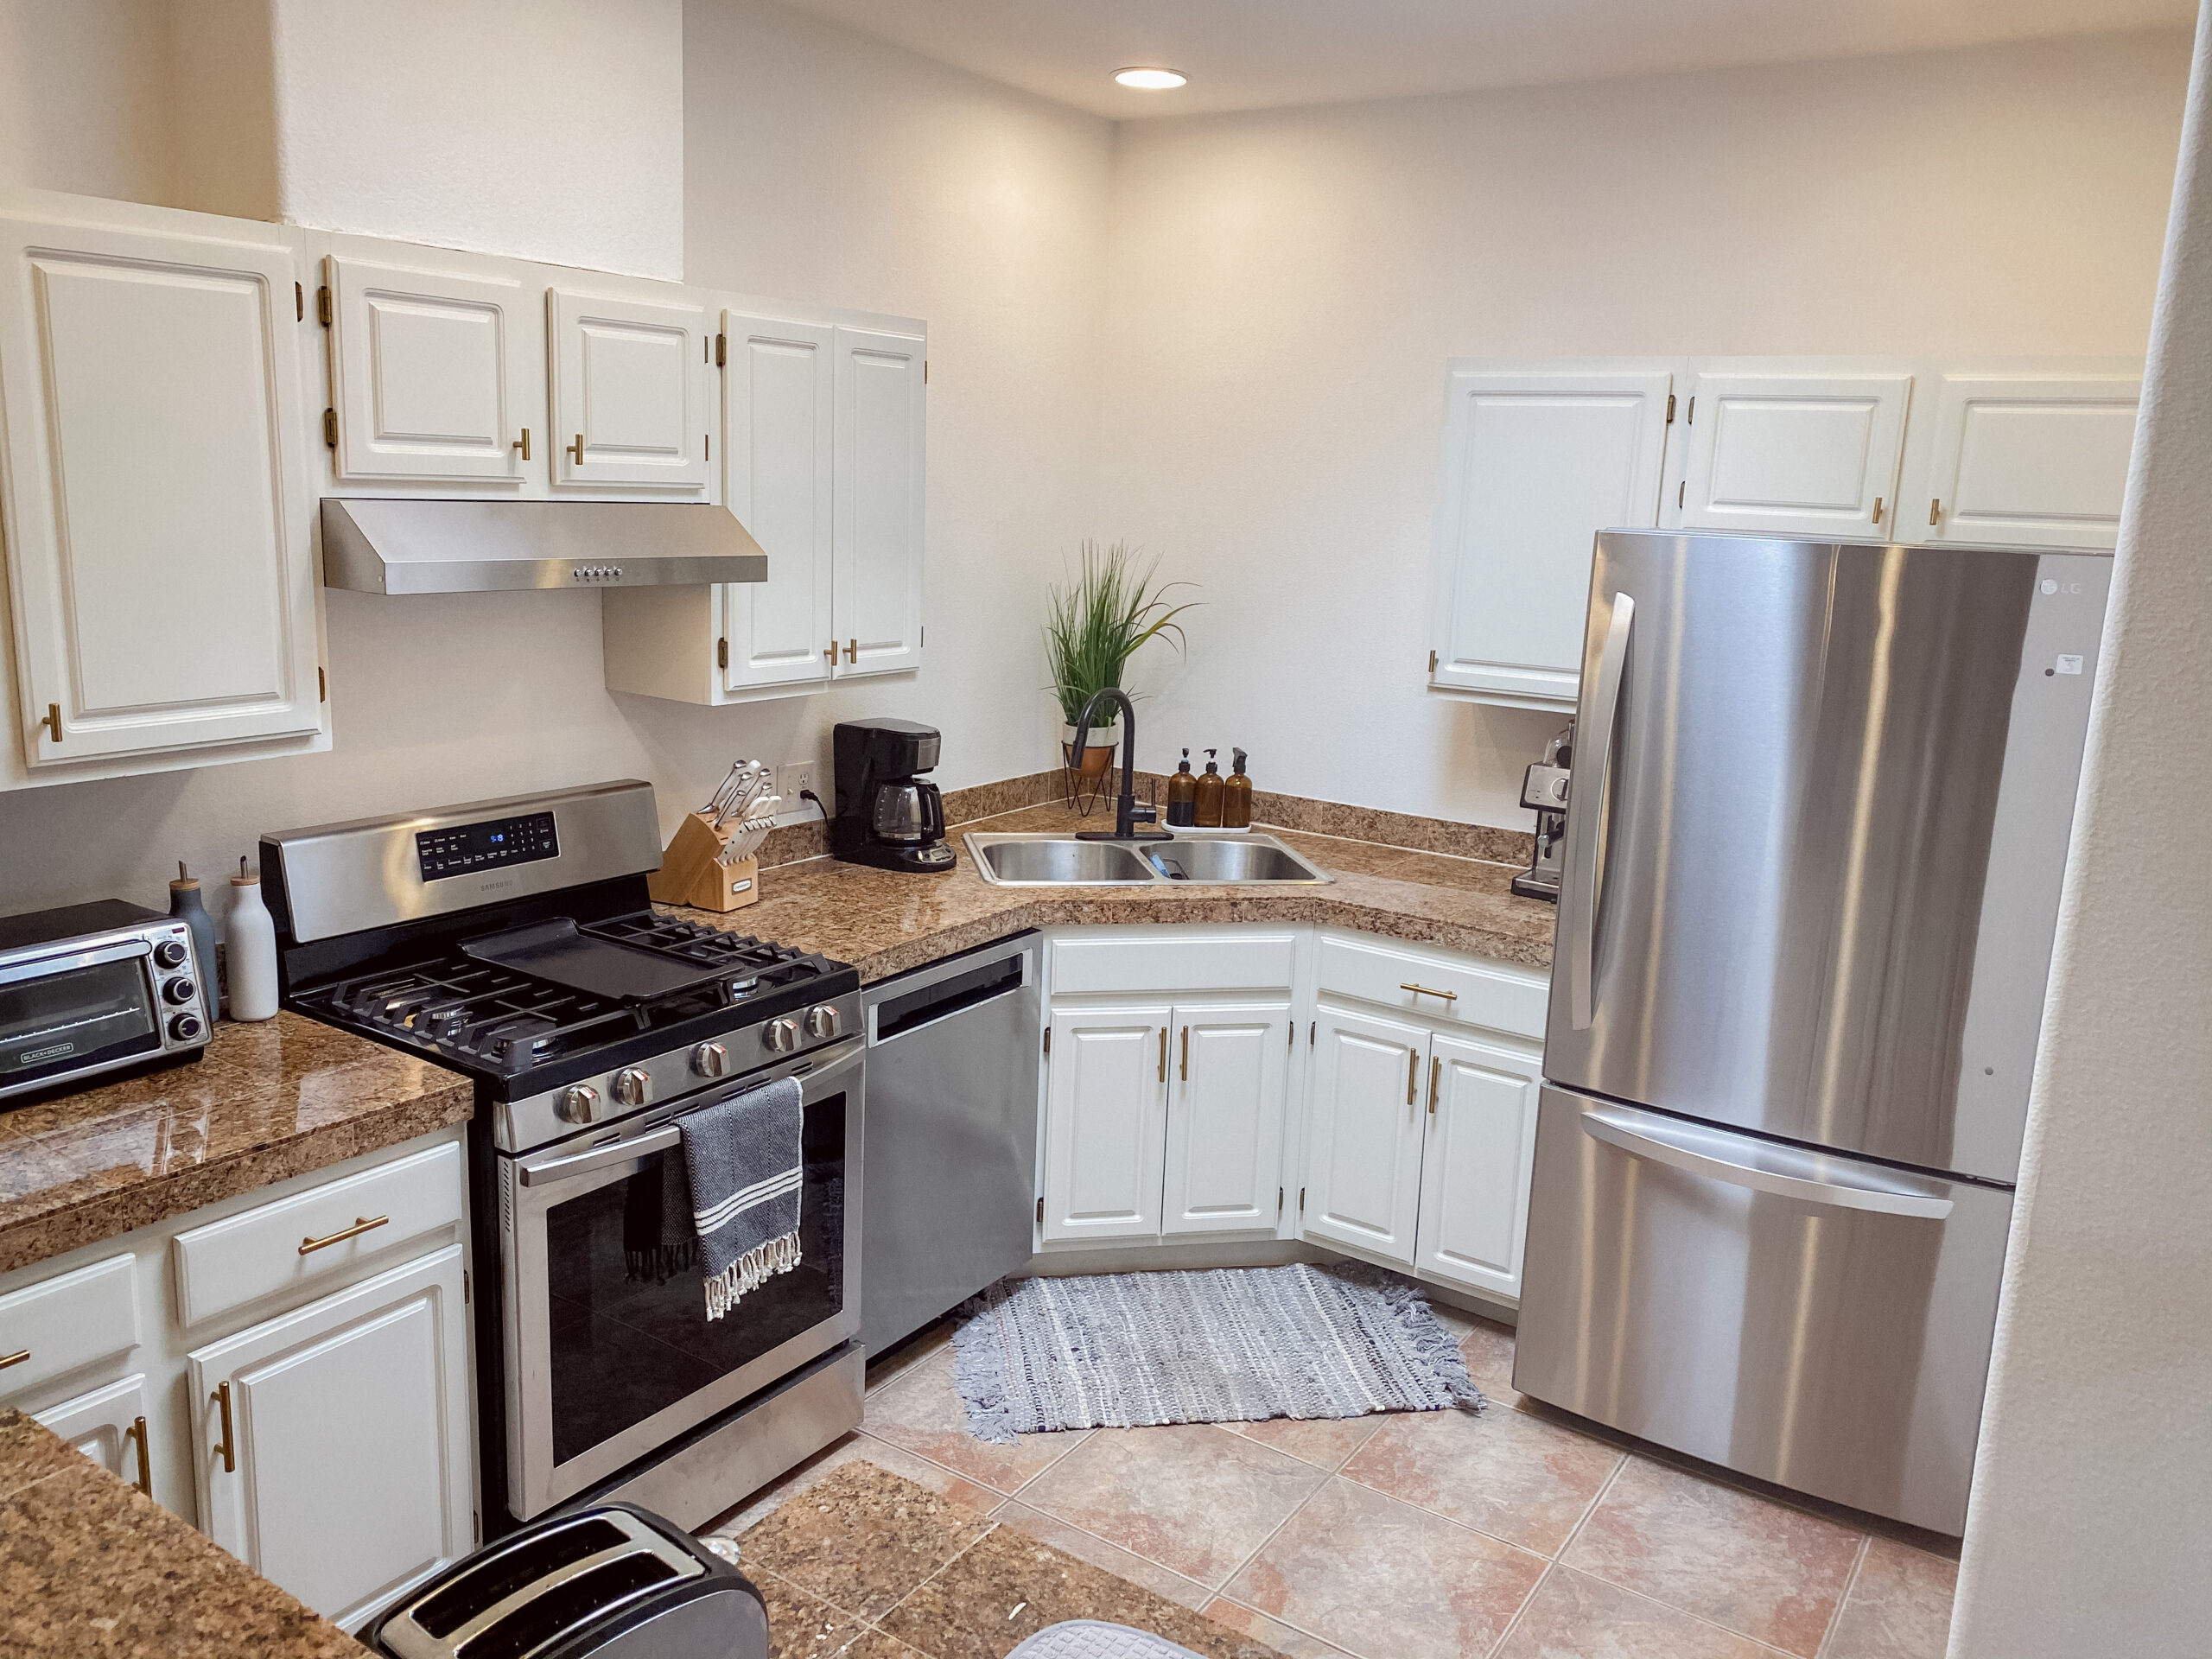 Kitchen Update: Painted Cabinets & New Appliances